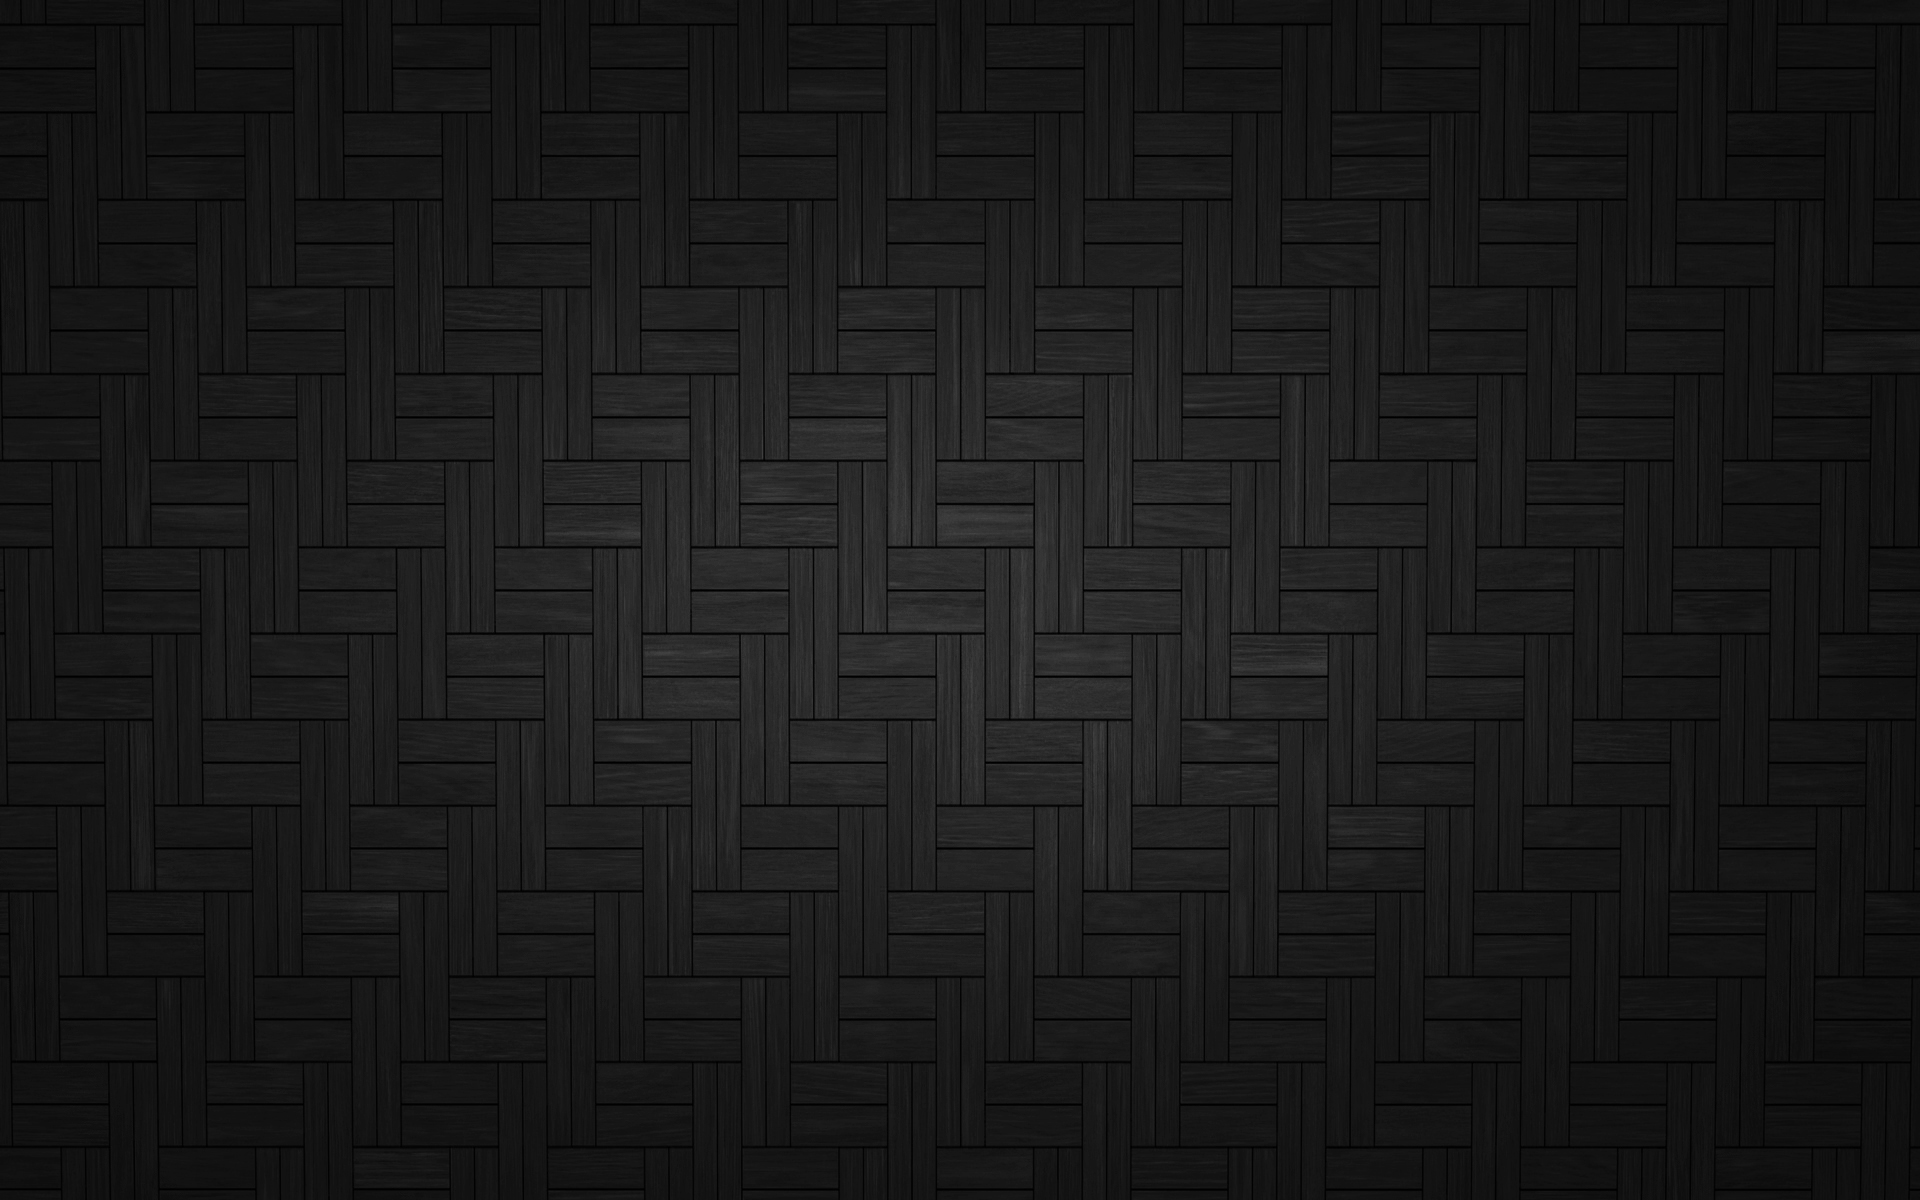 Hd Black Wallpaper